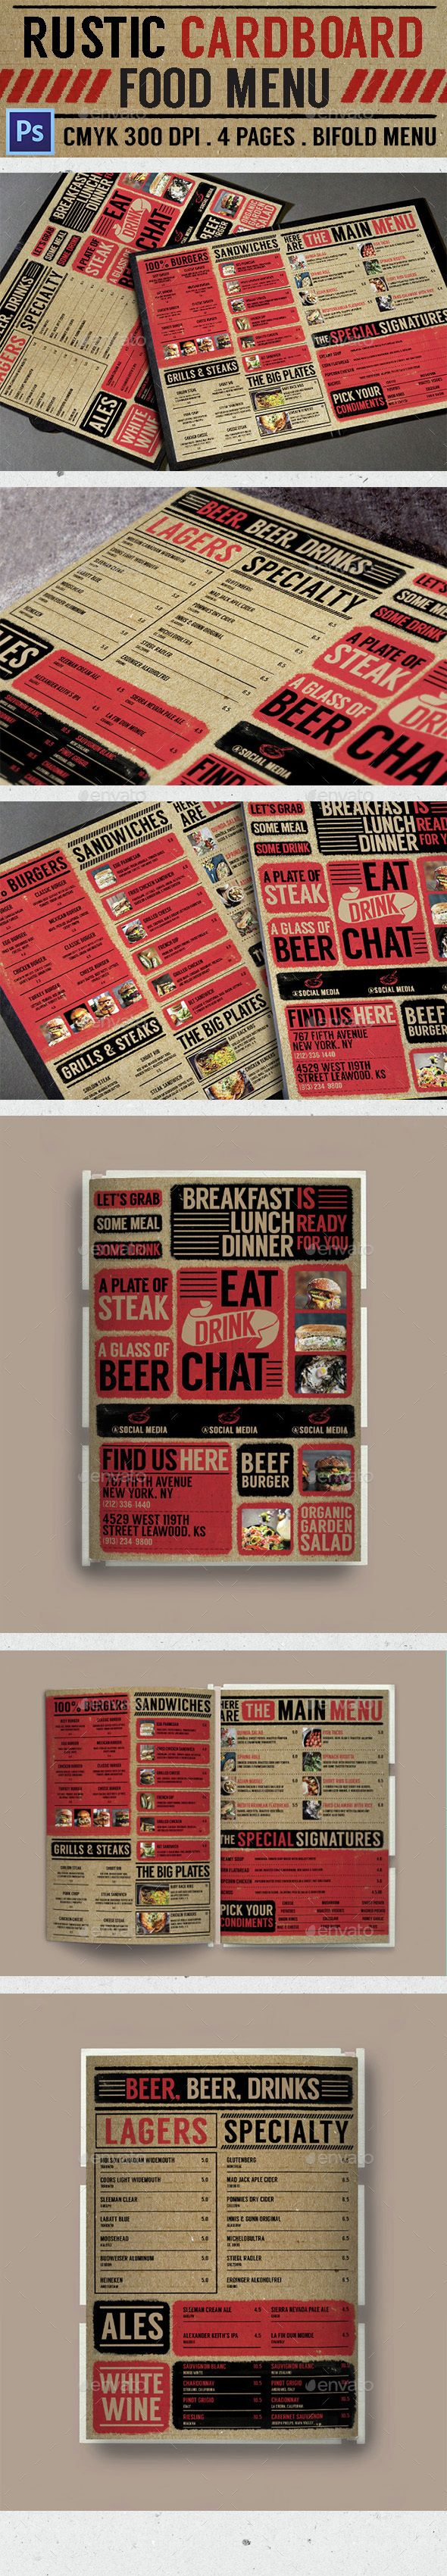 best 25+ restaurant menu design ideas on pinterest | menu design